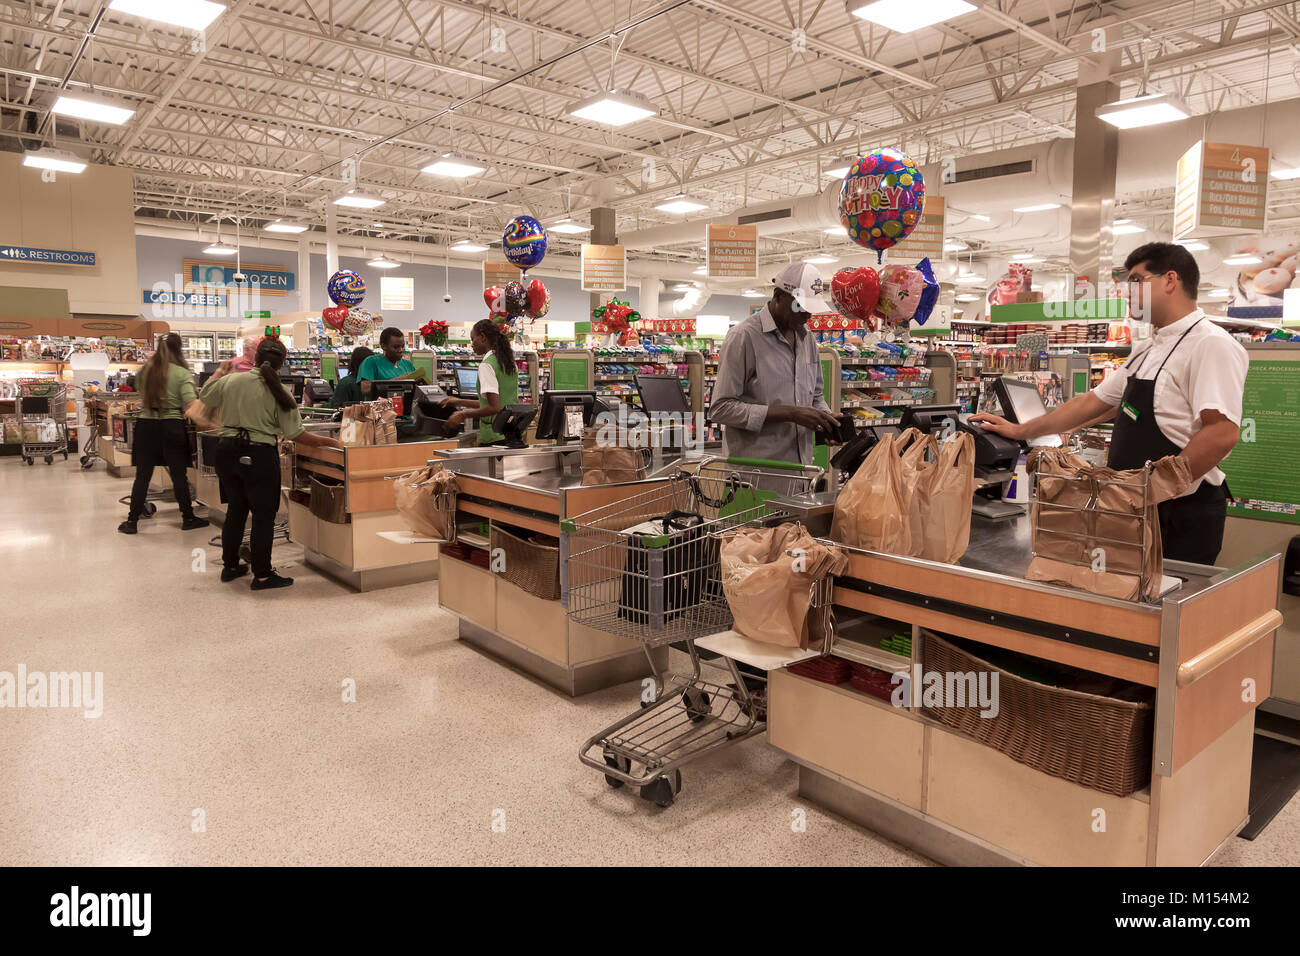 Publix Supermarket checkout counters servicing shoppers in Florida, United States. - Stock Image